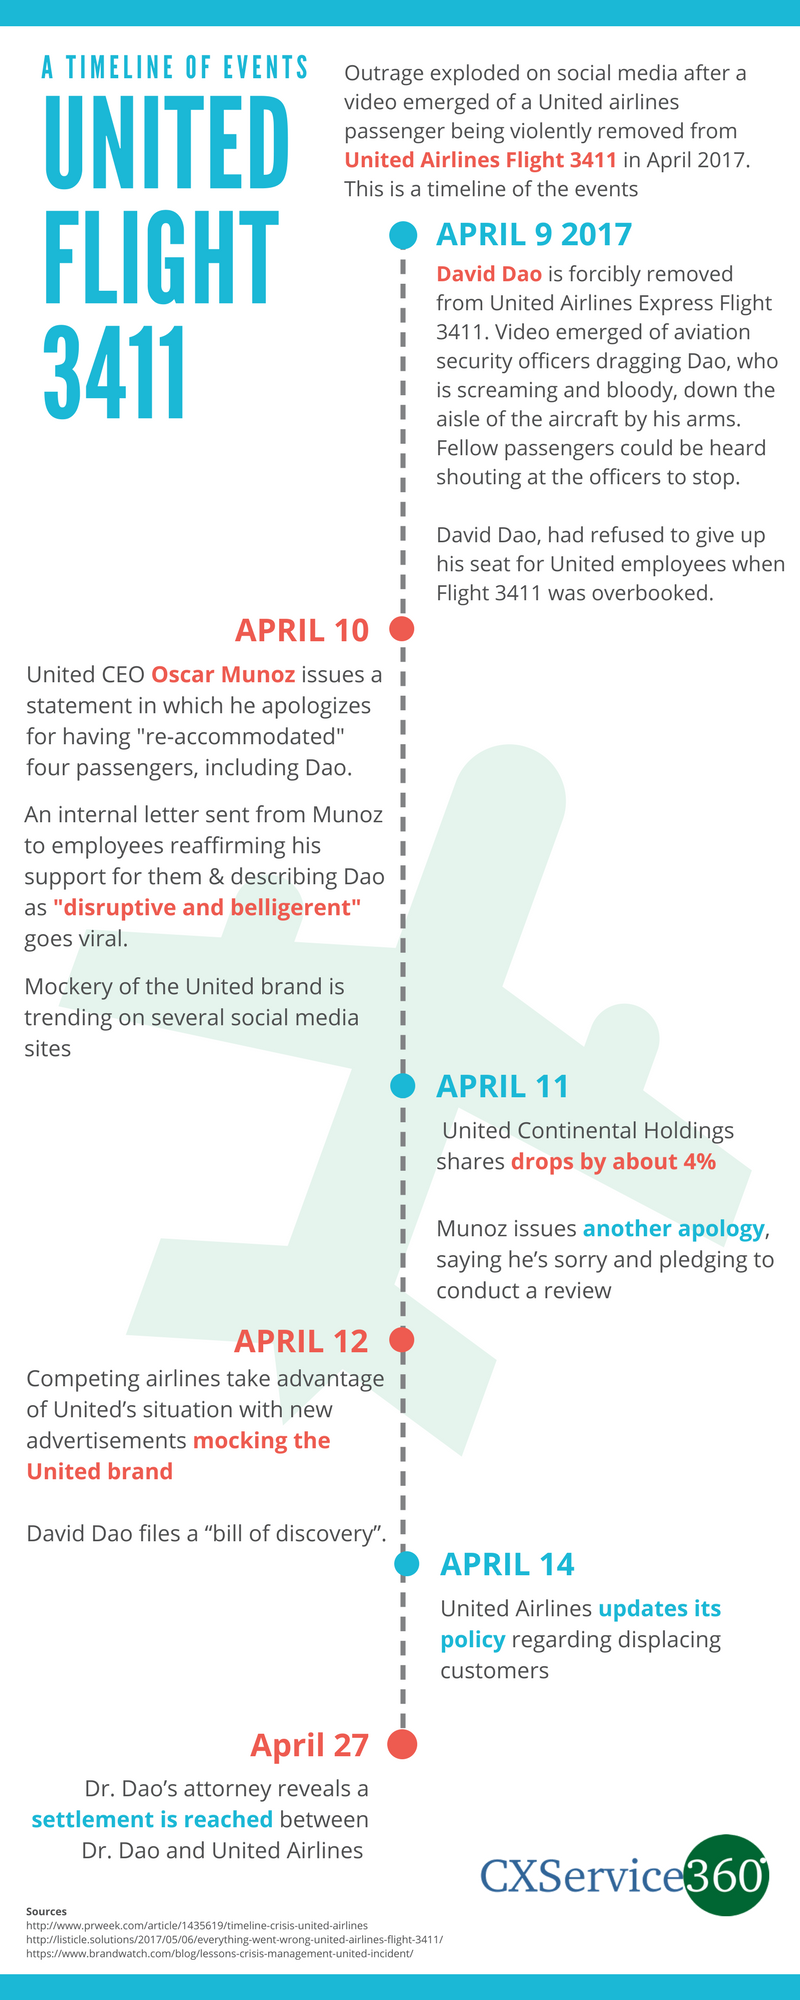 United Flight 3411 Incident Timeline